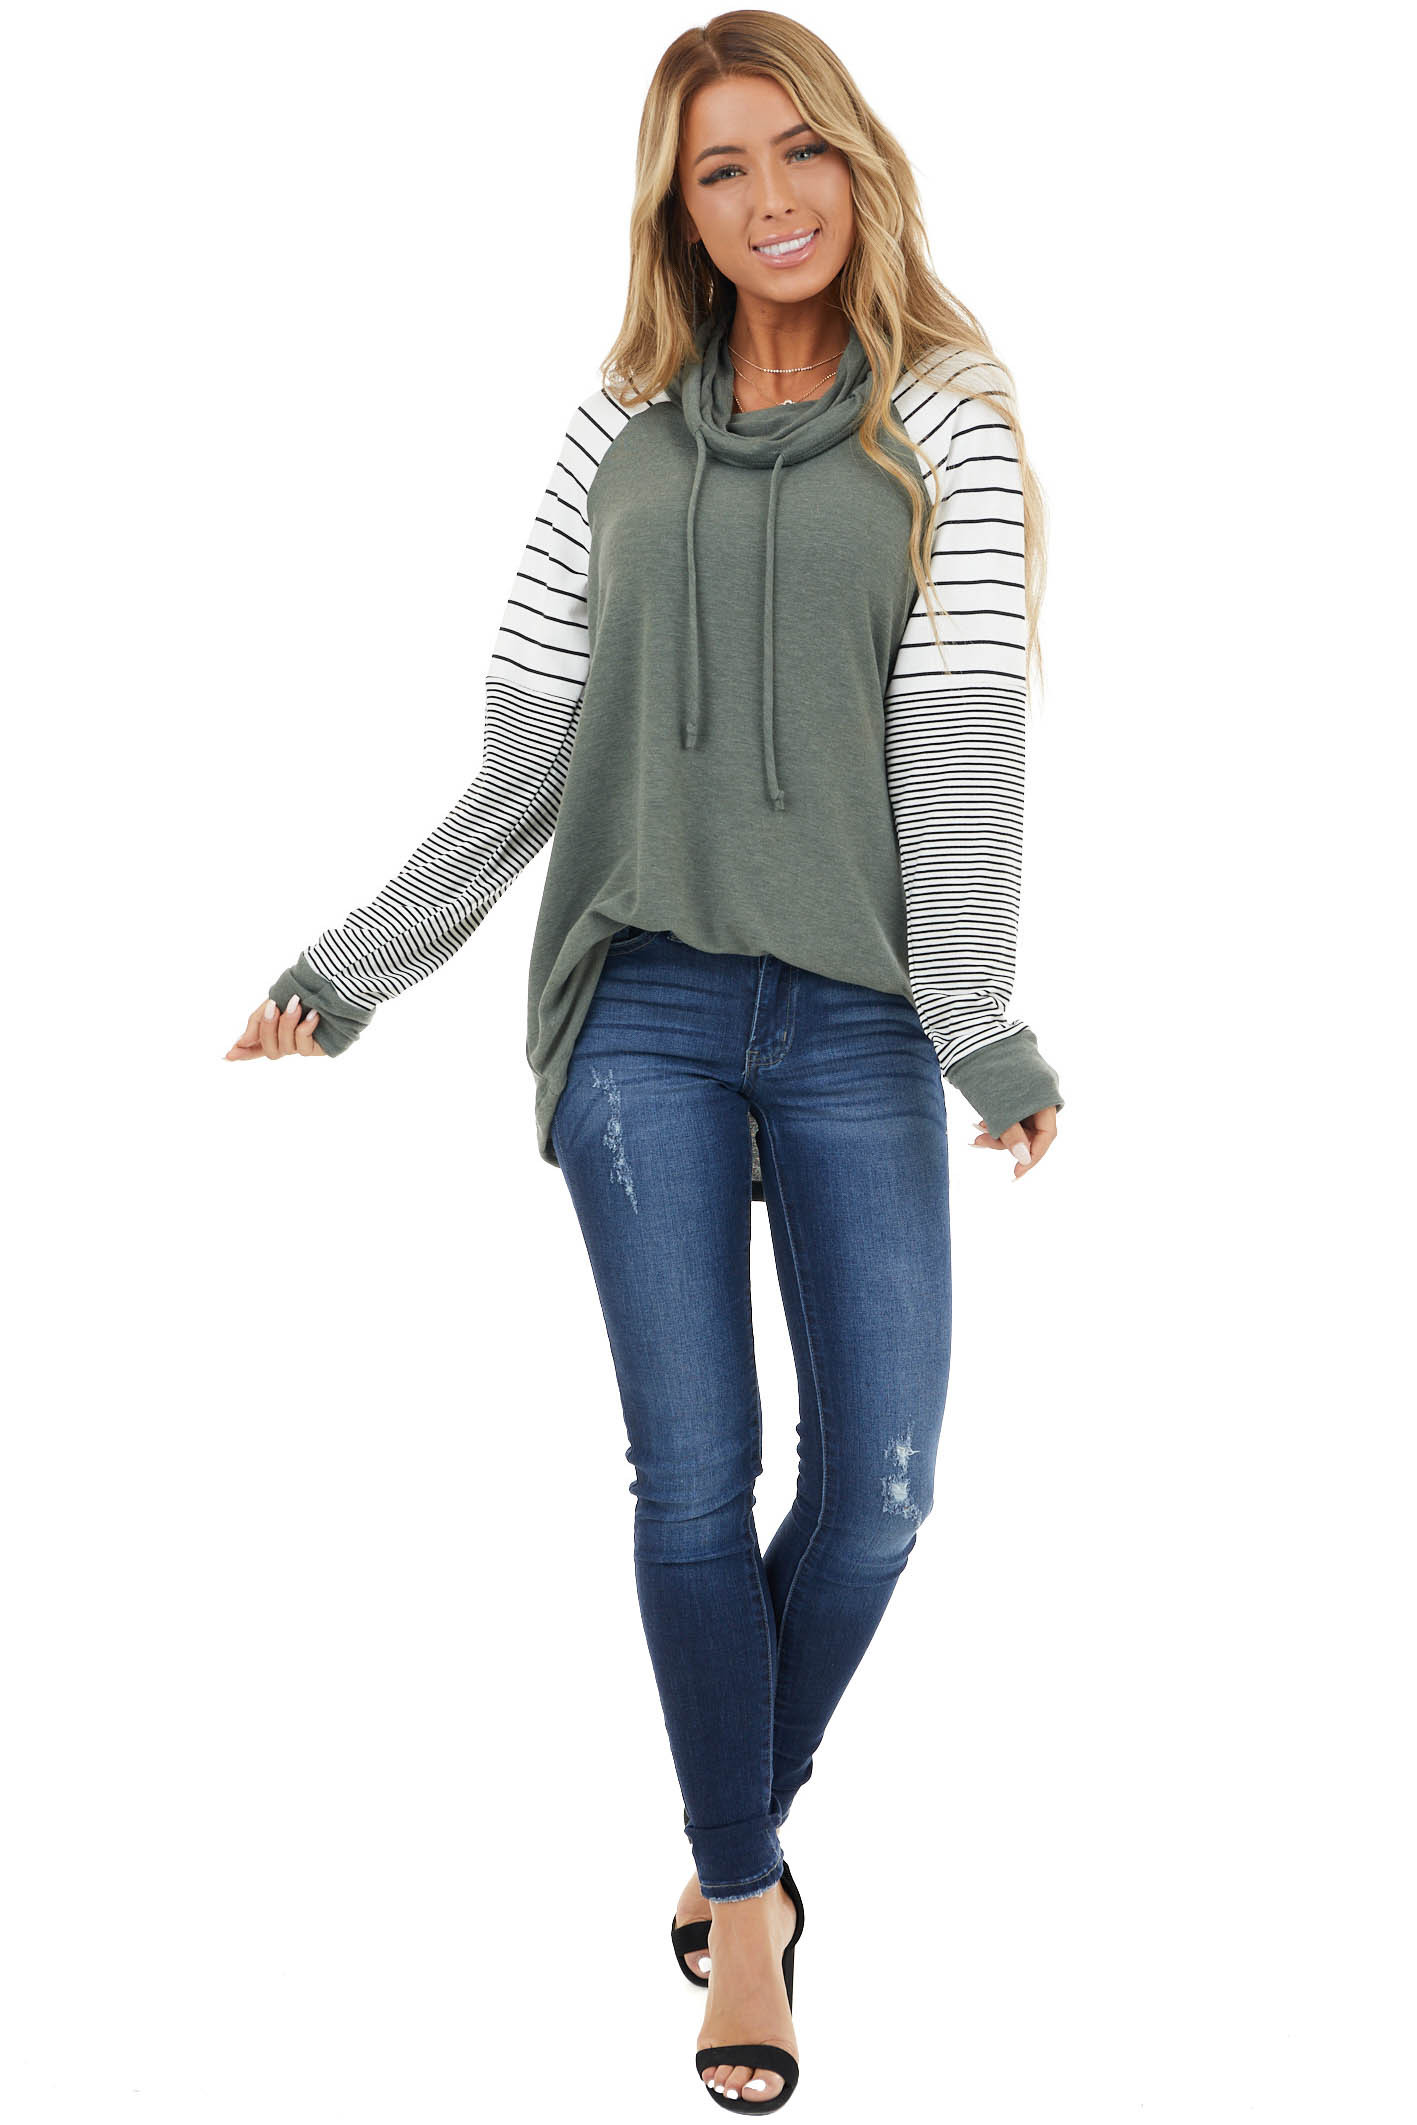 Forest Green Knit Cowl Neck Top with Long Striped Sleeves